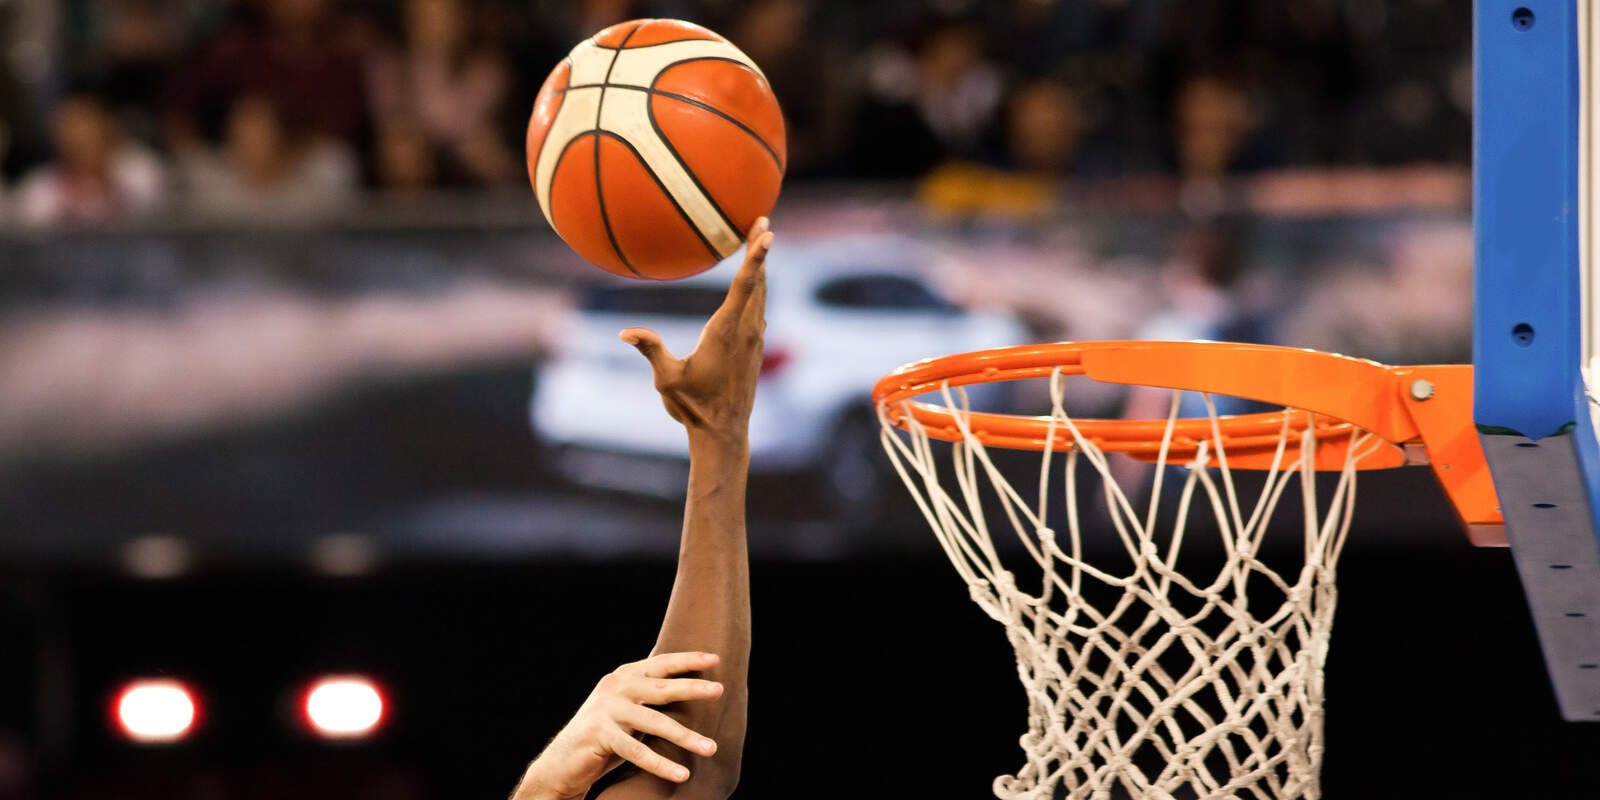 Events in Chicago: NBA All Star Game